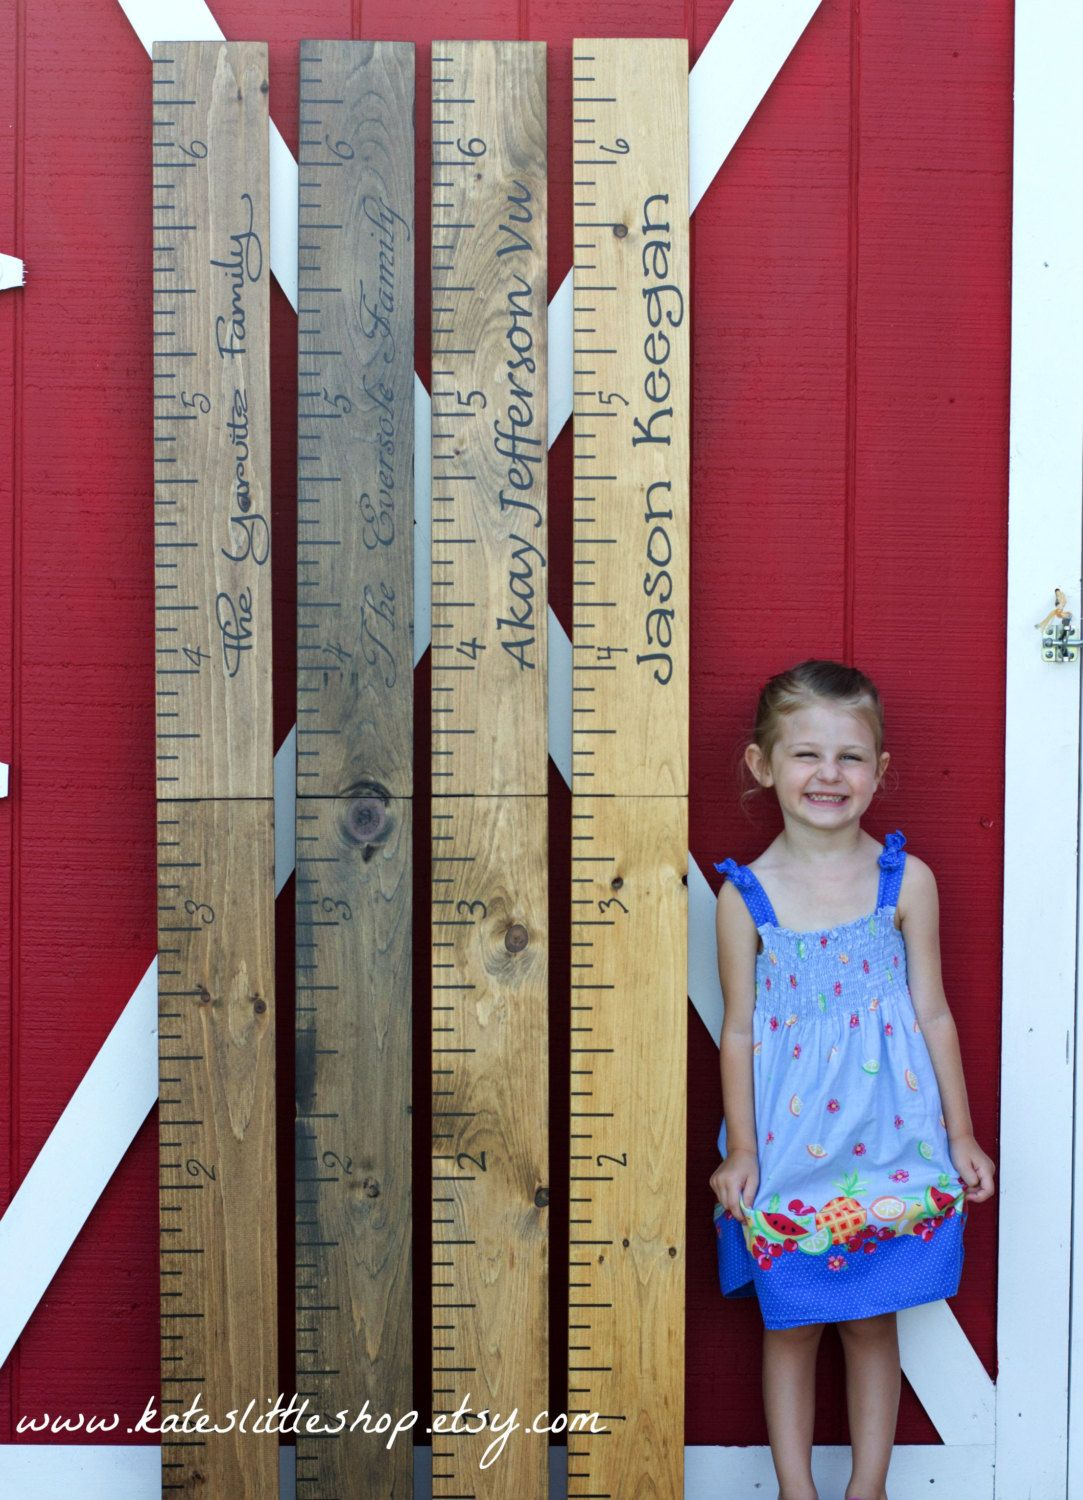 Giant ruler hand painted family growth chart childrens growth family growth chart childrens growth chart childrens measuring nvjuhfo Images